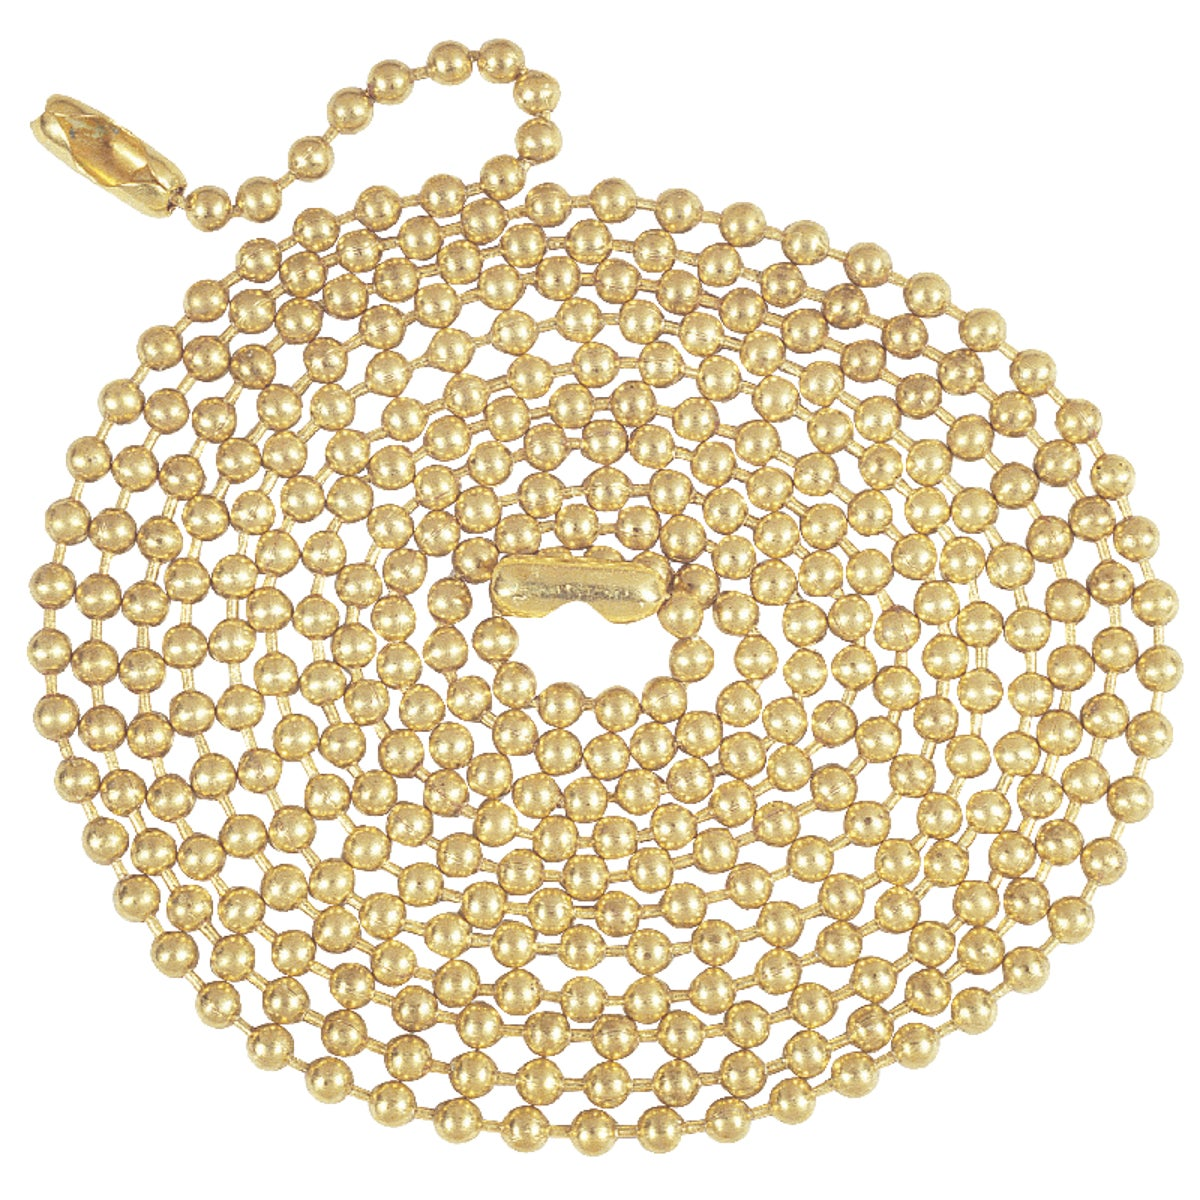 5' BRASS BEADED CHAIN - 70168 by Westinghouse Lightng